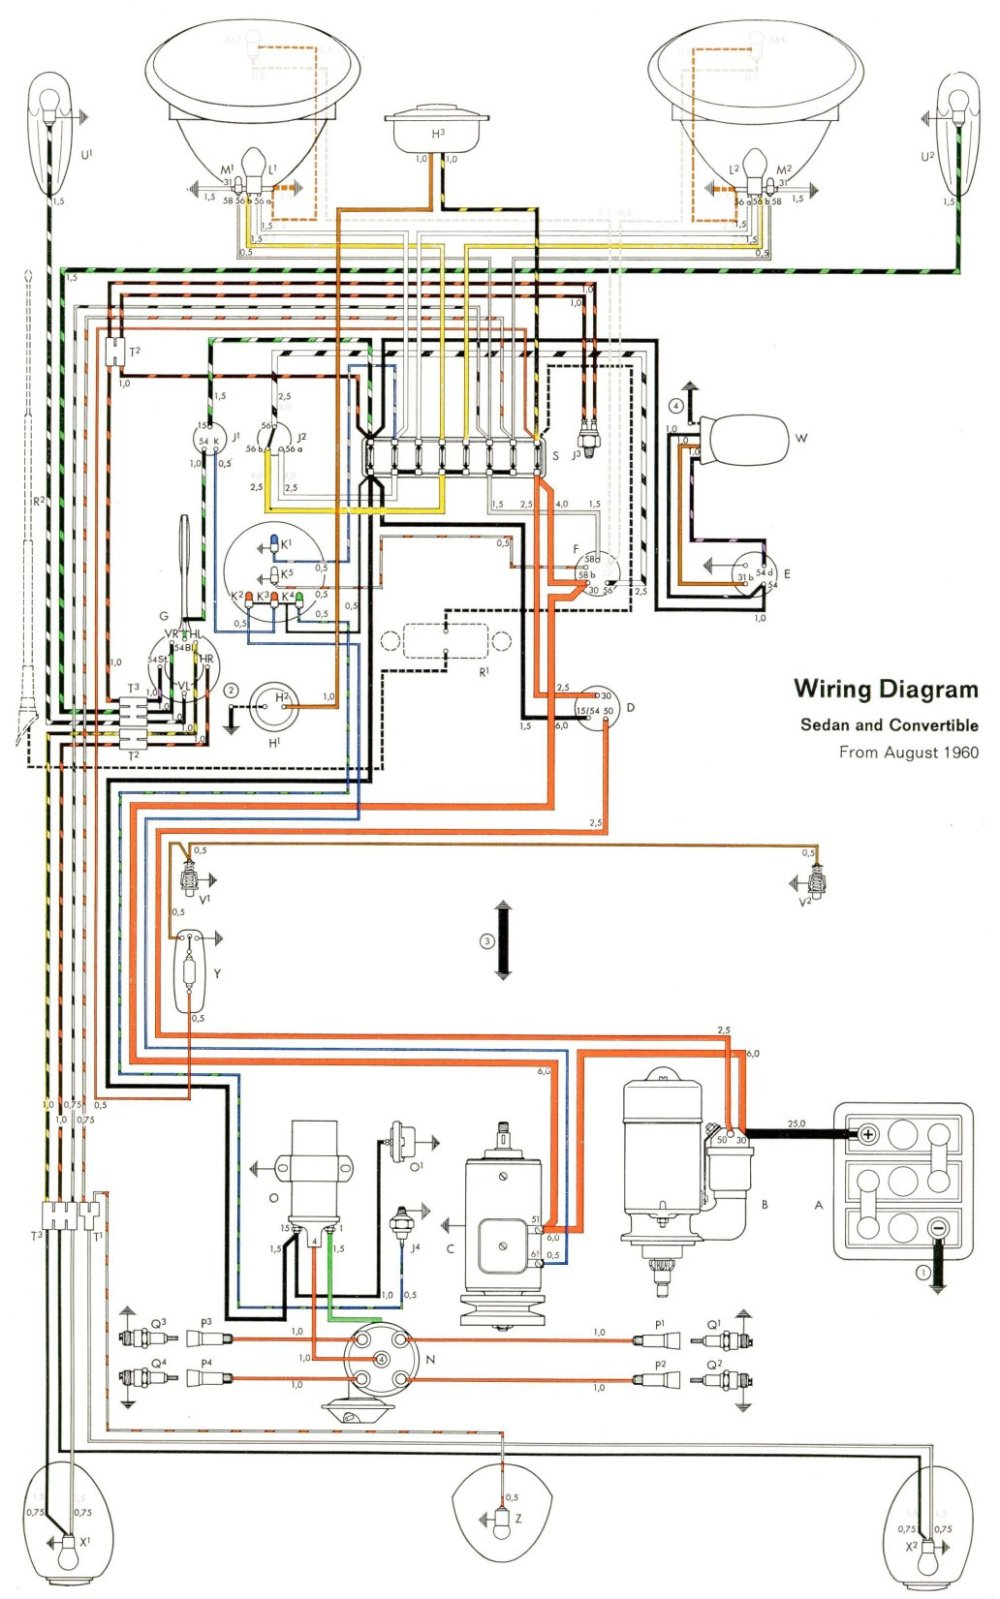 medium resolution of thesamba com type 1 wiring diagrams vw beetle panel vw beetle fuse diagram